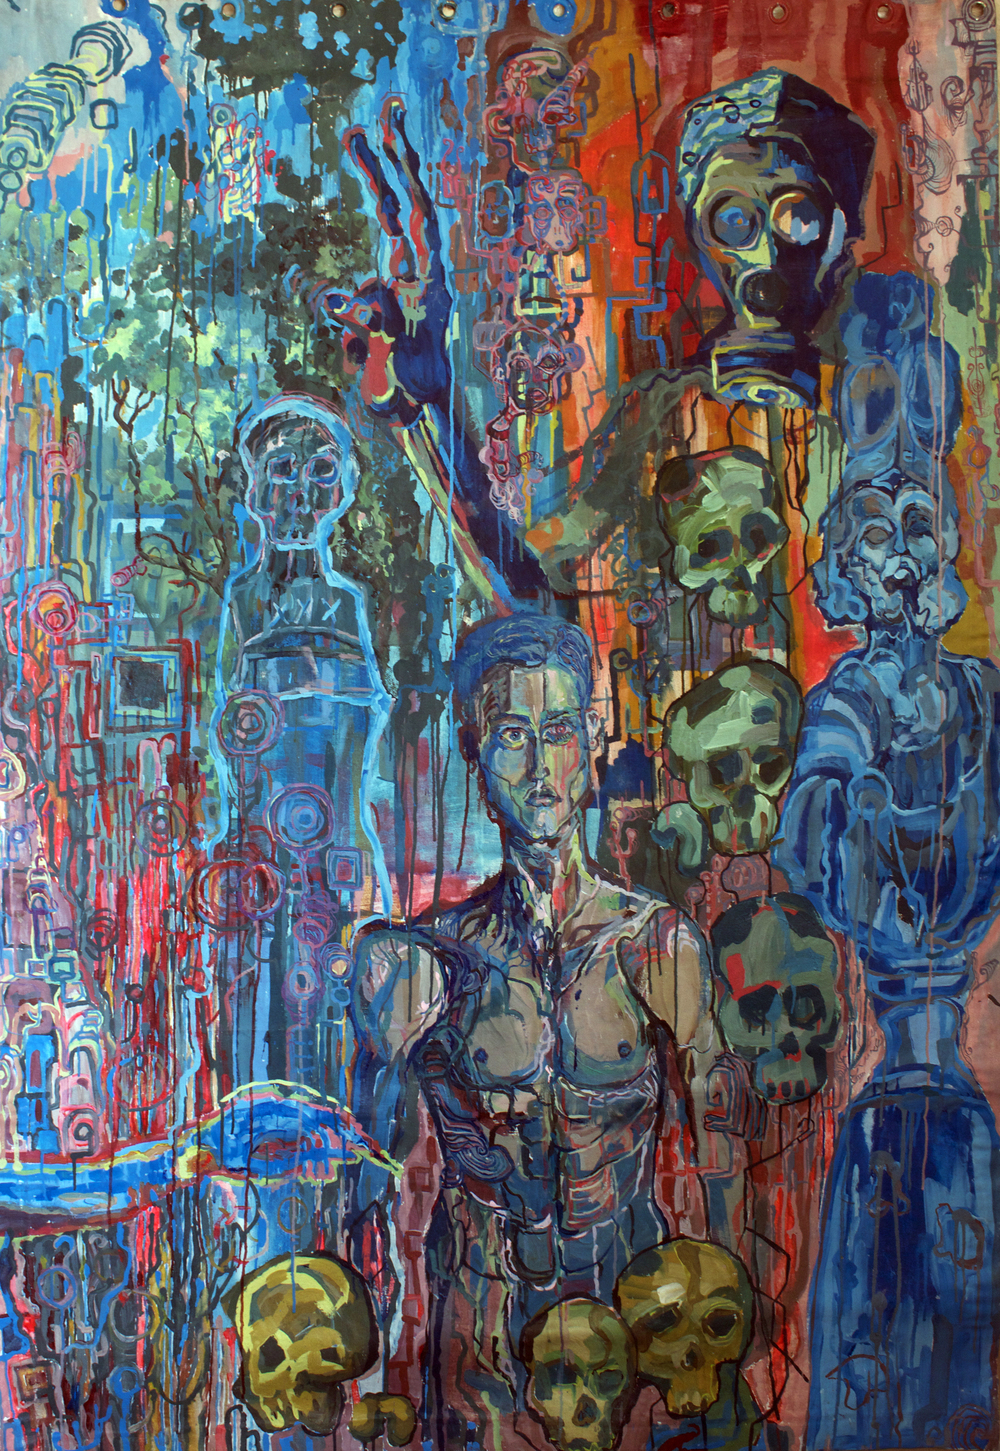 History's Decay, Acrylic on Canvas, 6ft x 5ft, 2002